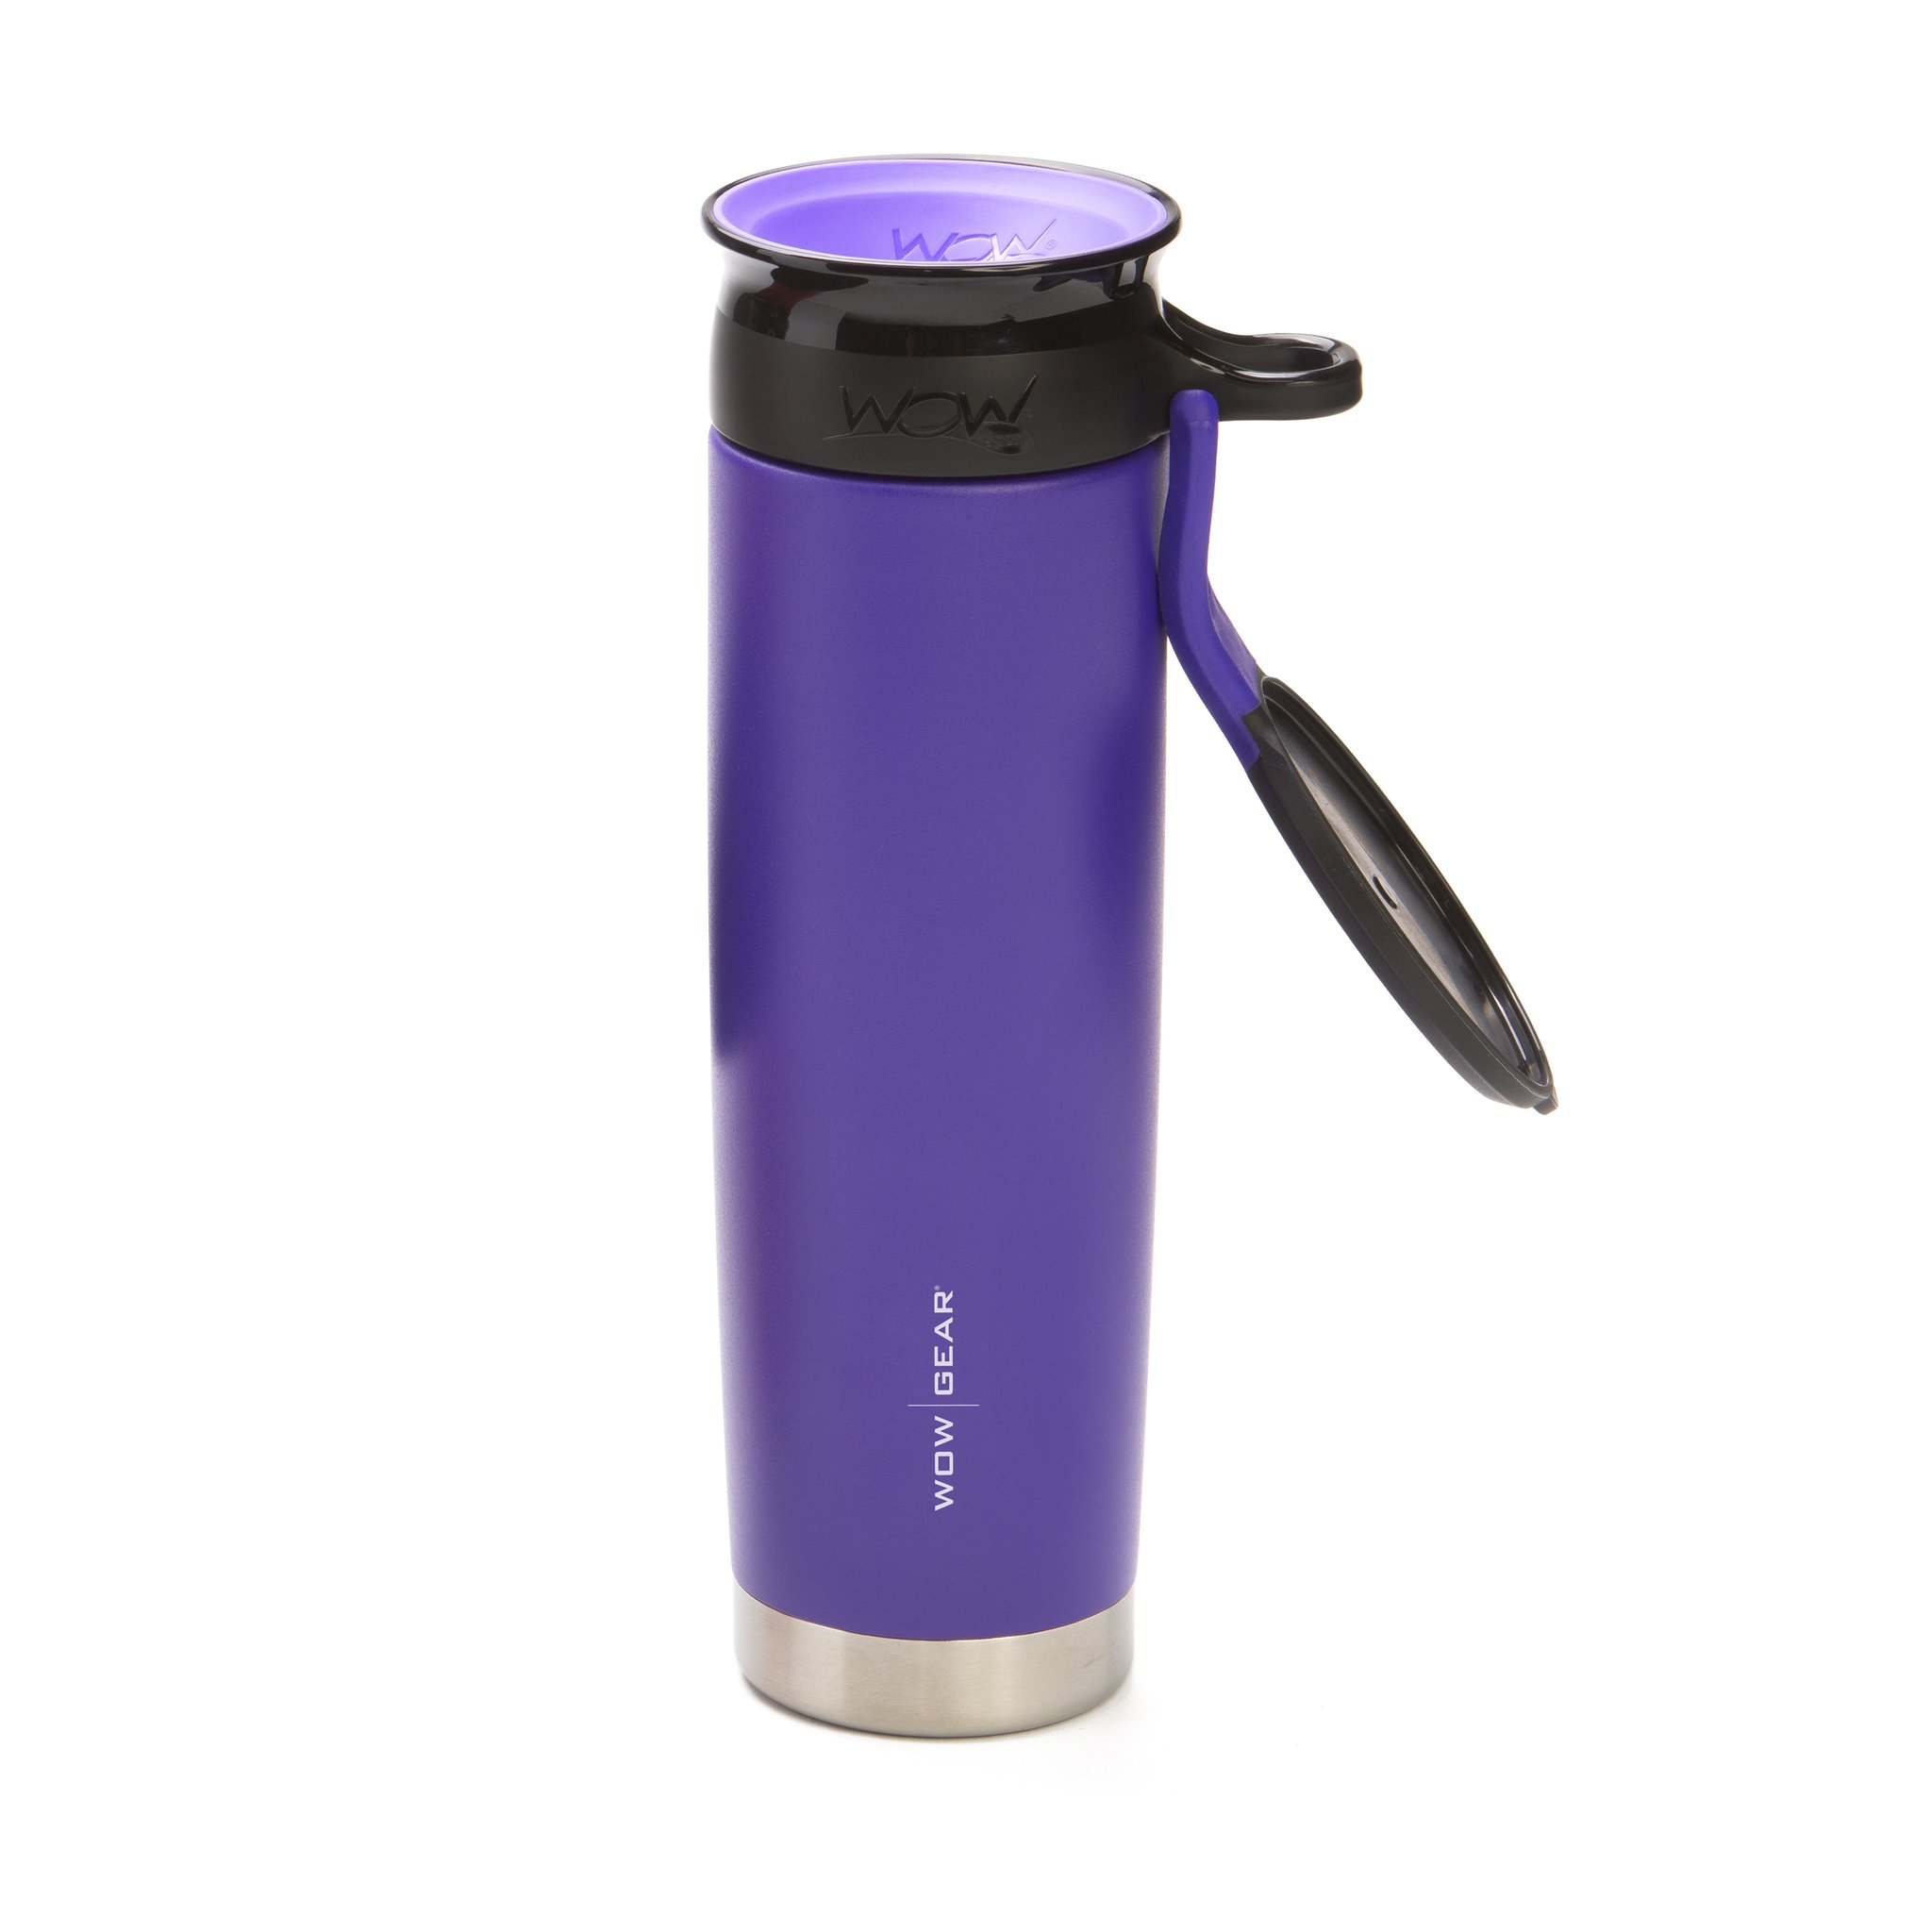 WOW Gear 360 Stainless Steel Cup, 22oz, Purp